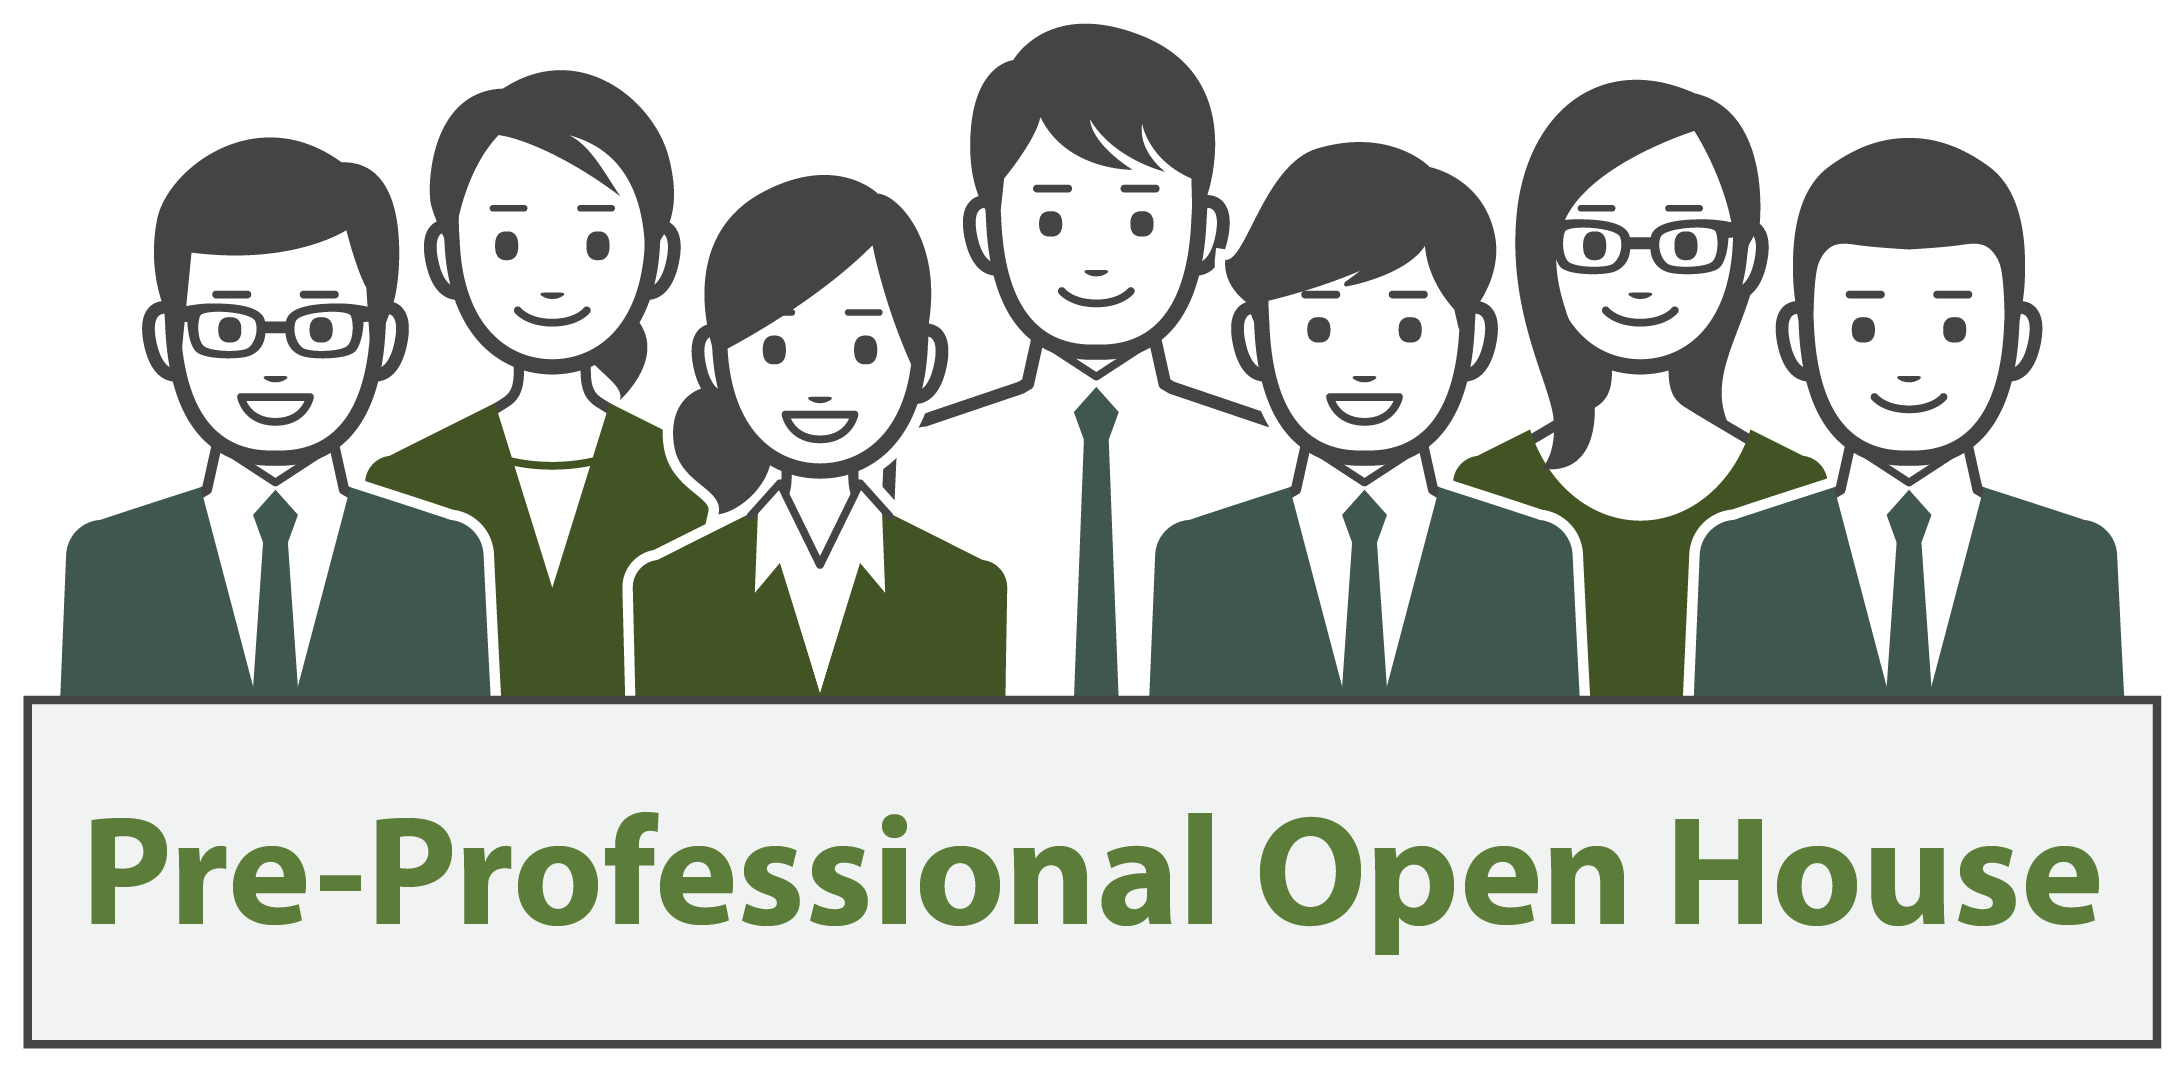 Pre-Professional Open House